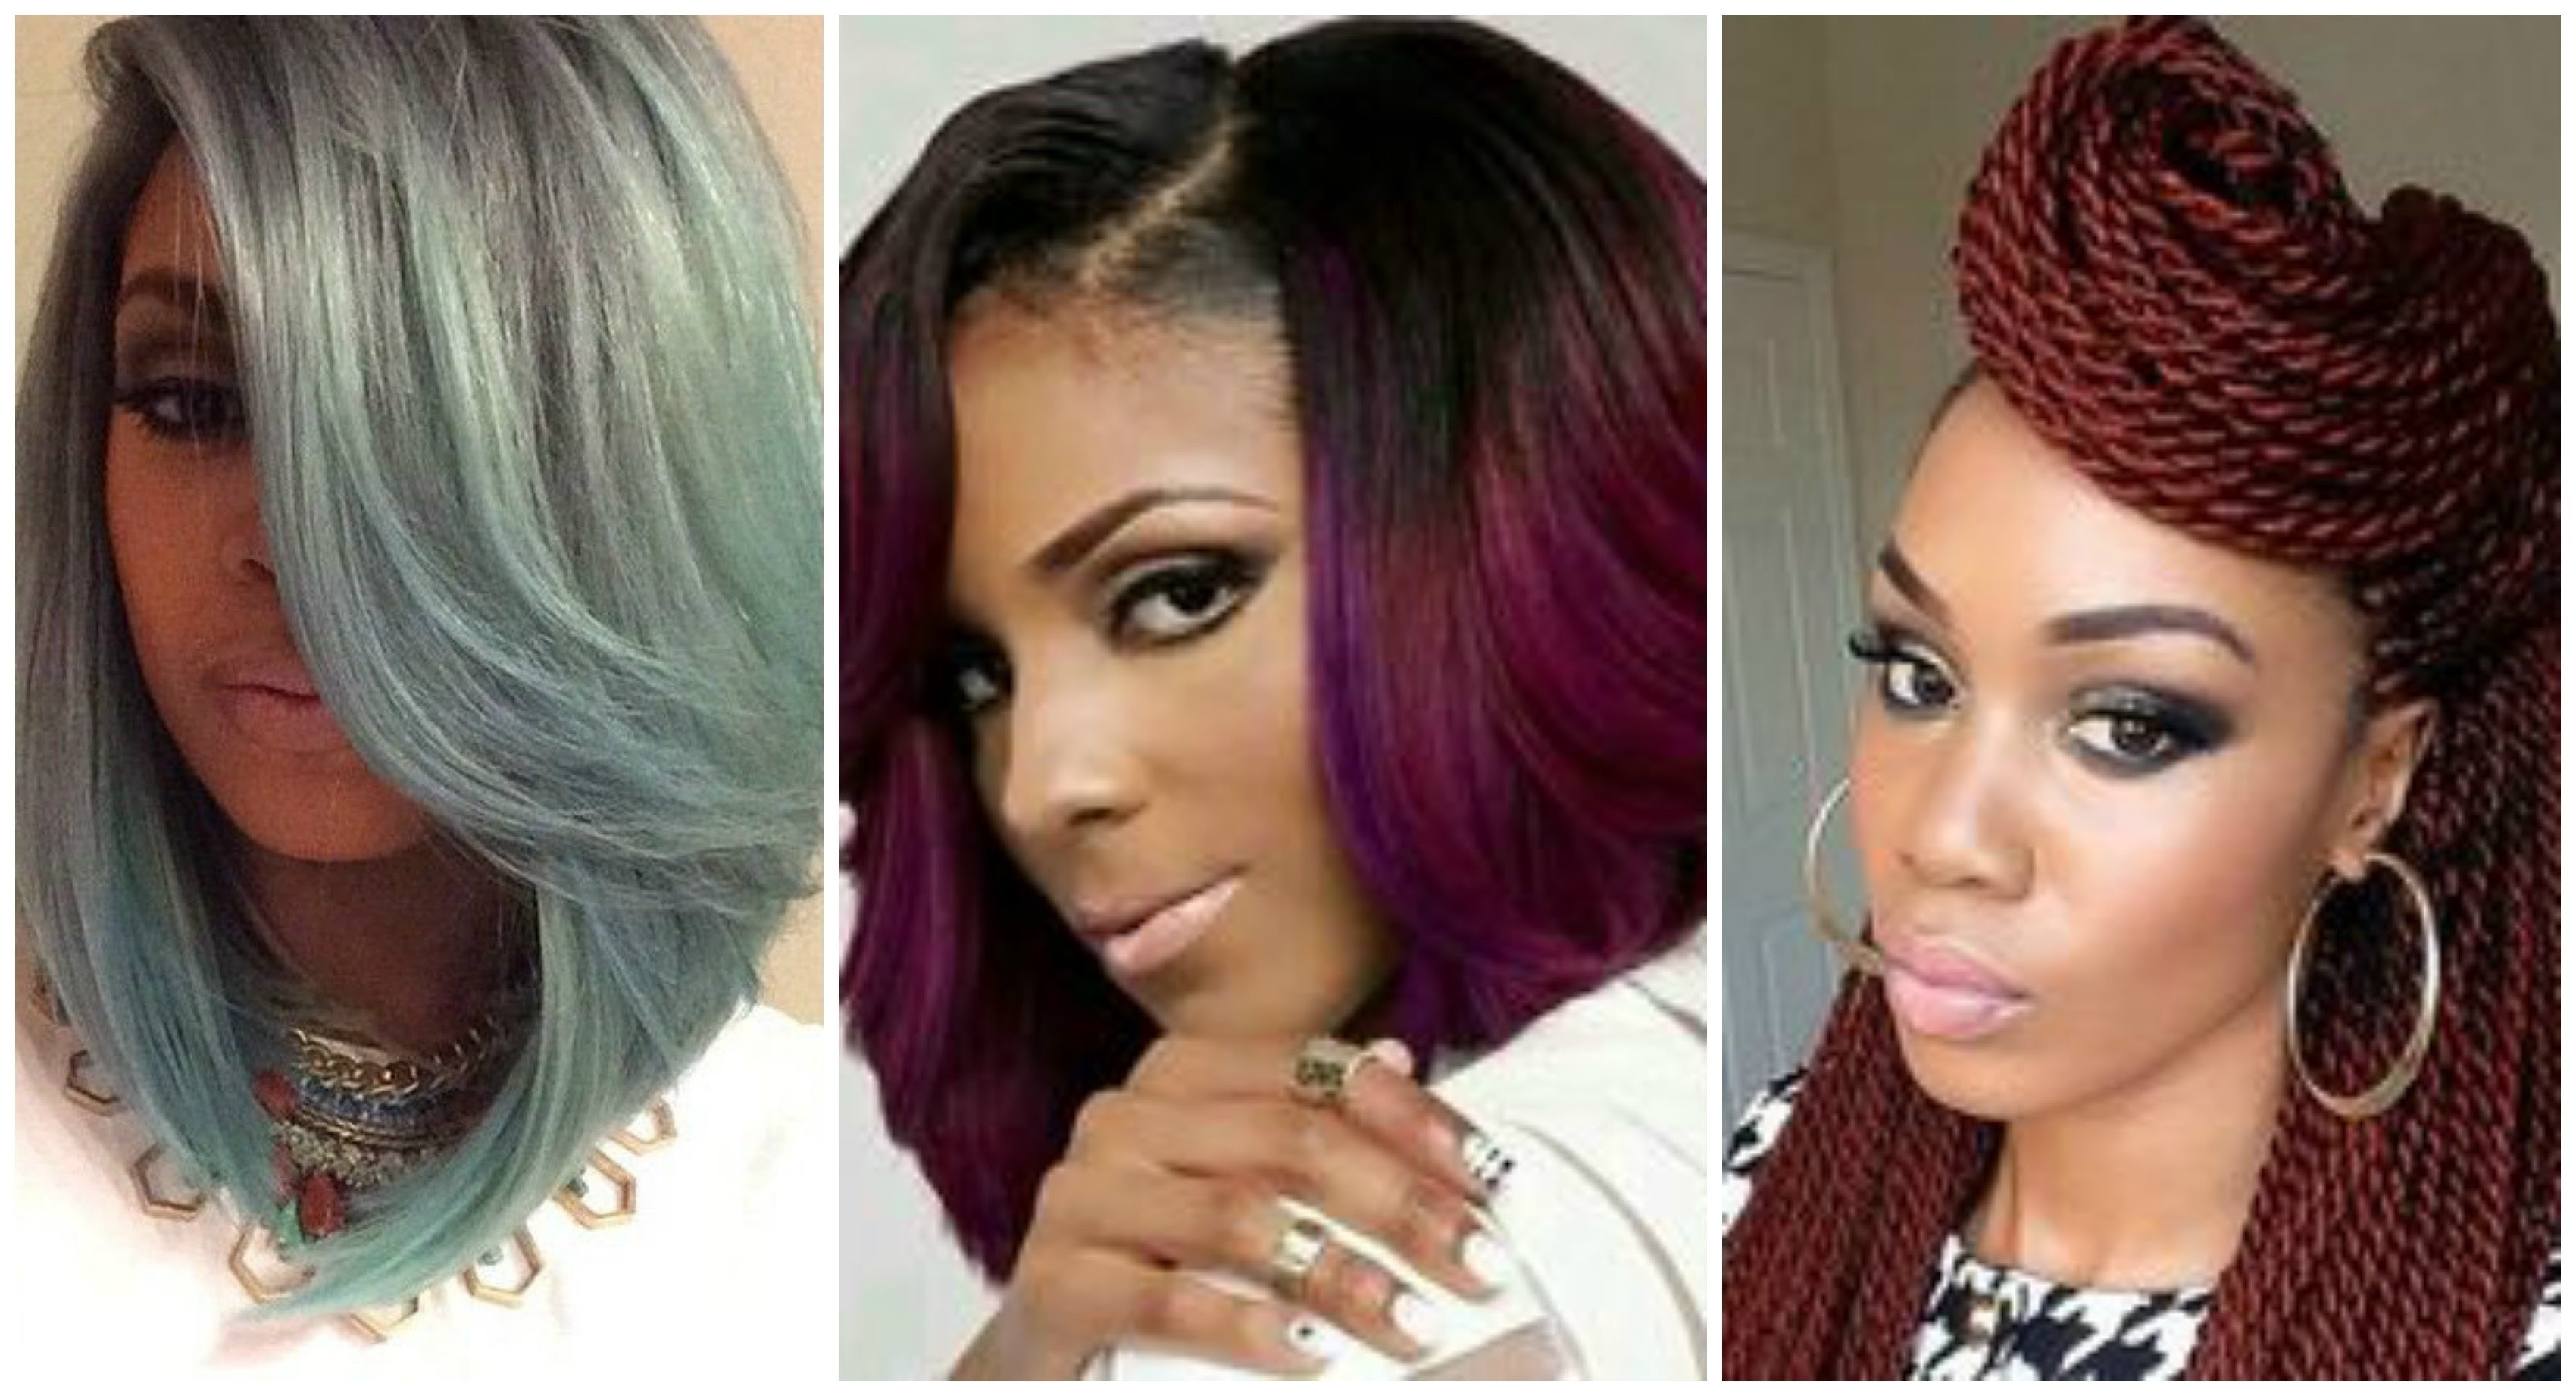 10 Famous African American Hair Color Ideas bold hair color ideas for black women youtube african american 1 2020